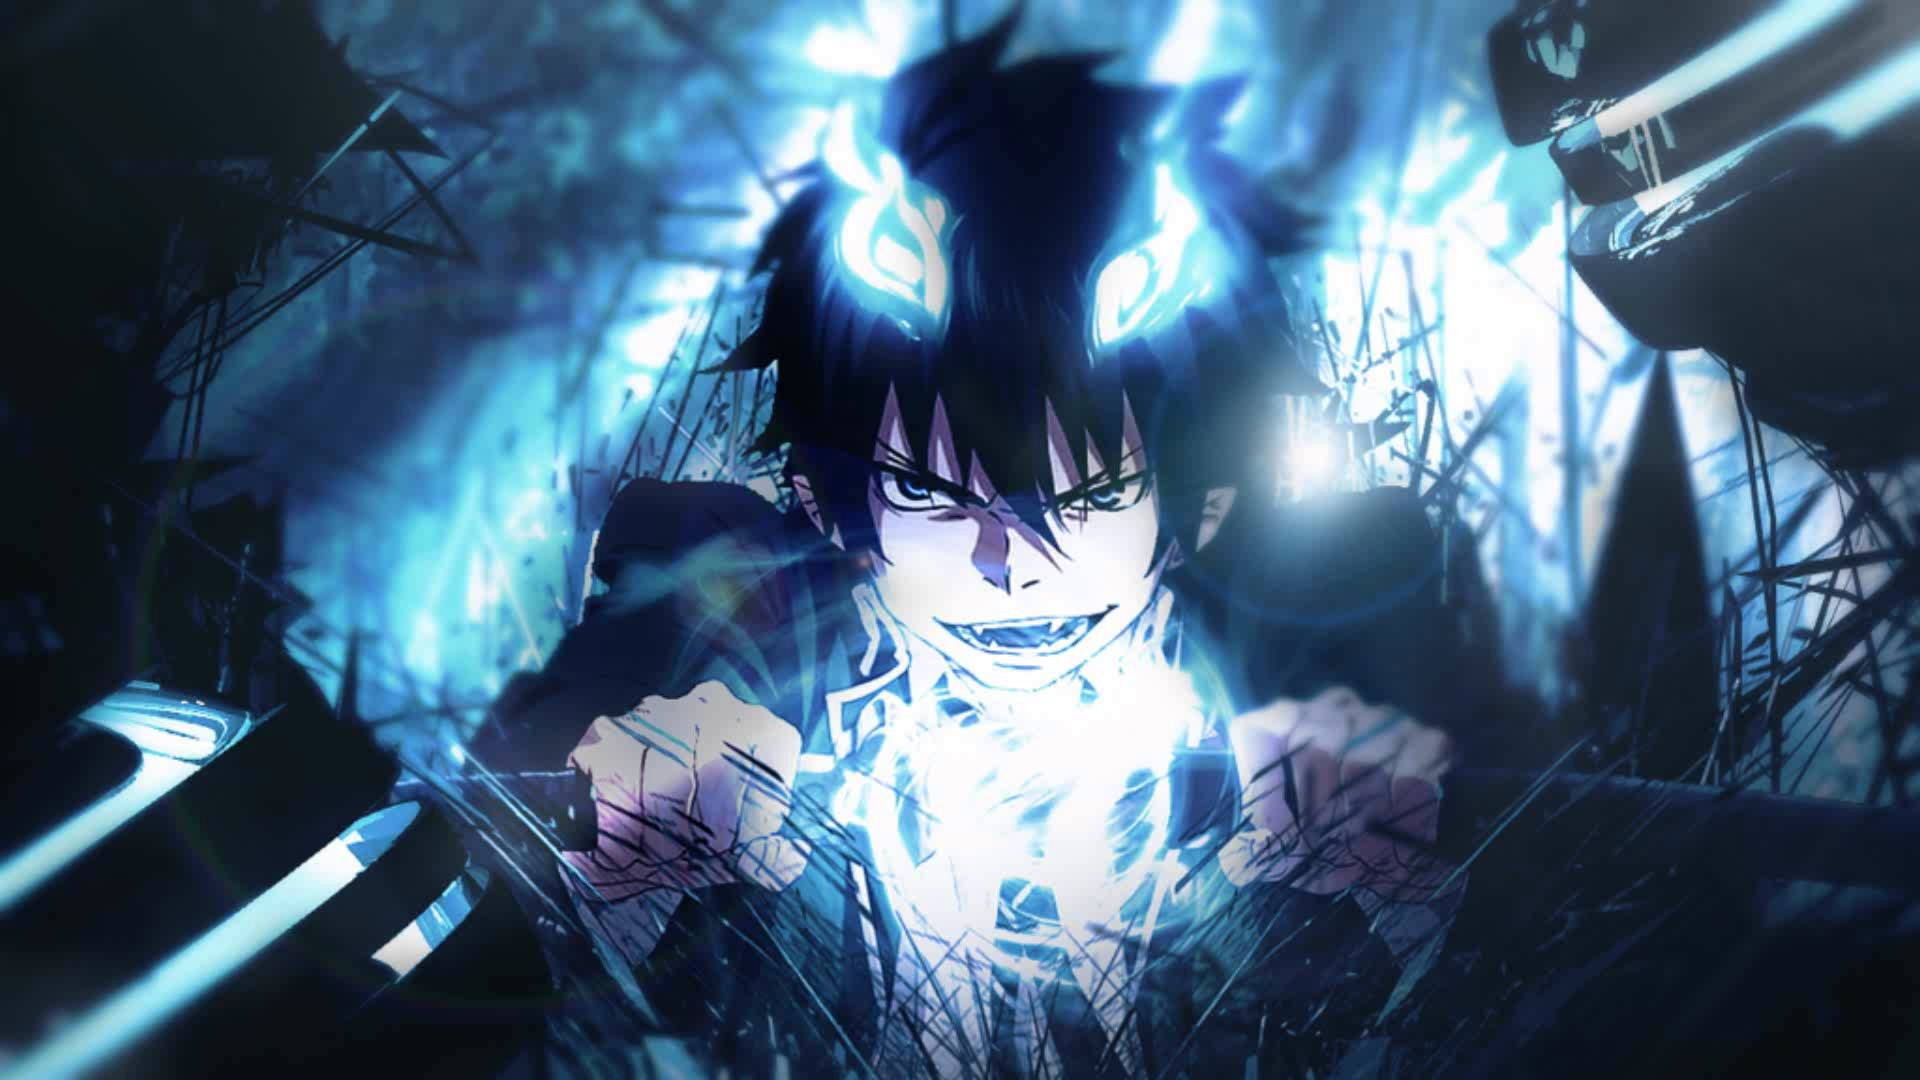 Blue Exorcist Returning To Television With Anime Set For 2017